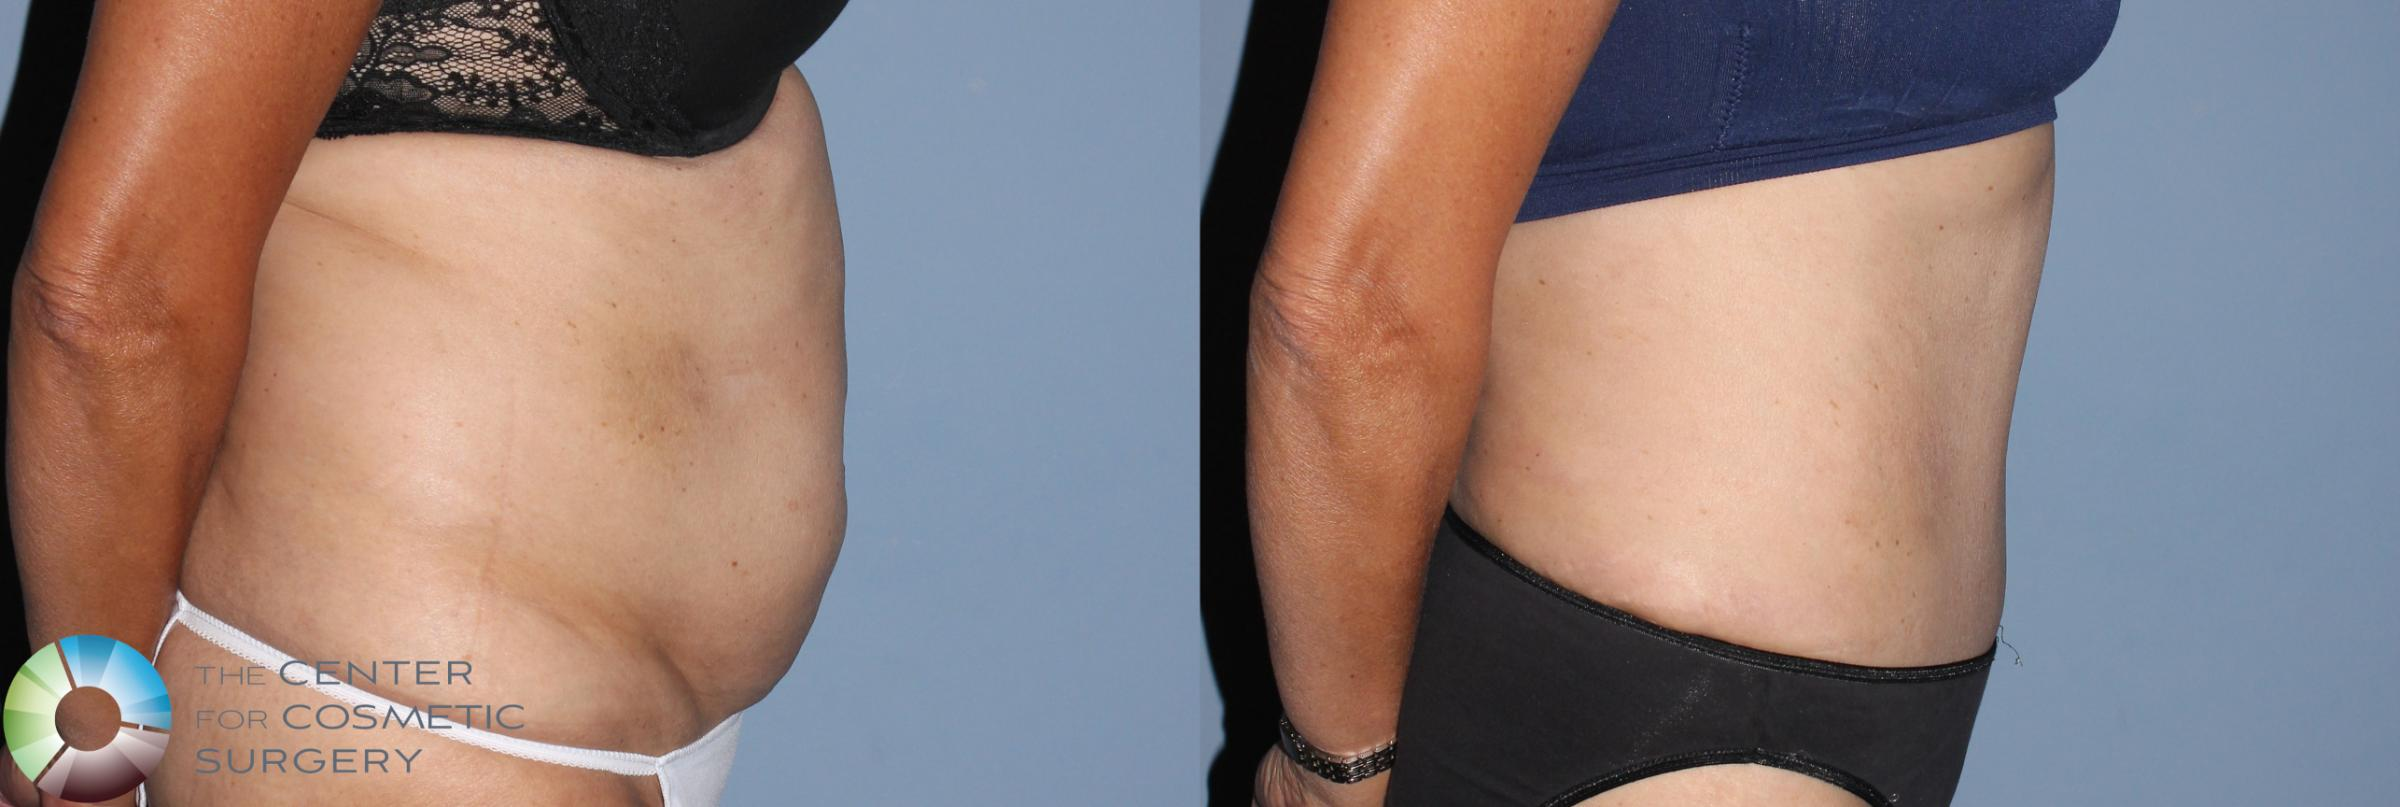 Tummy Tuck Case 795 Before & After View #2 | Golden, CO | The Center for Cosmetic Surgery